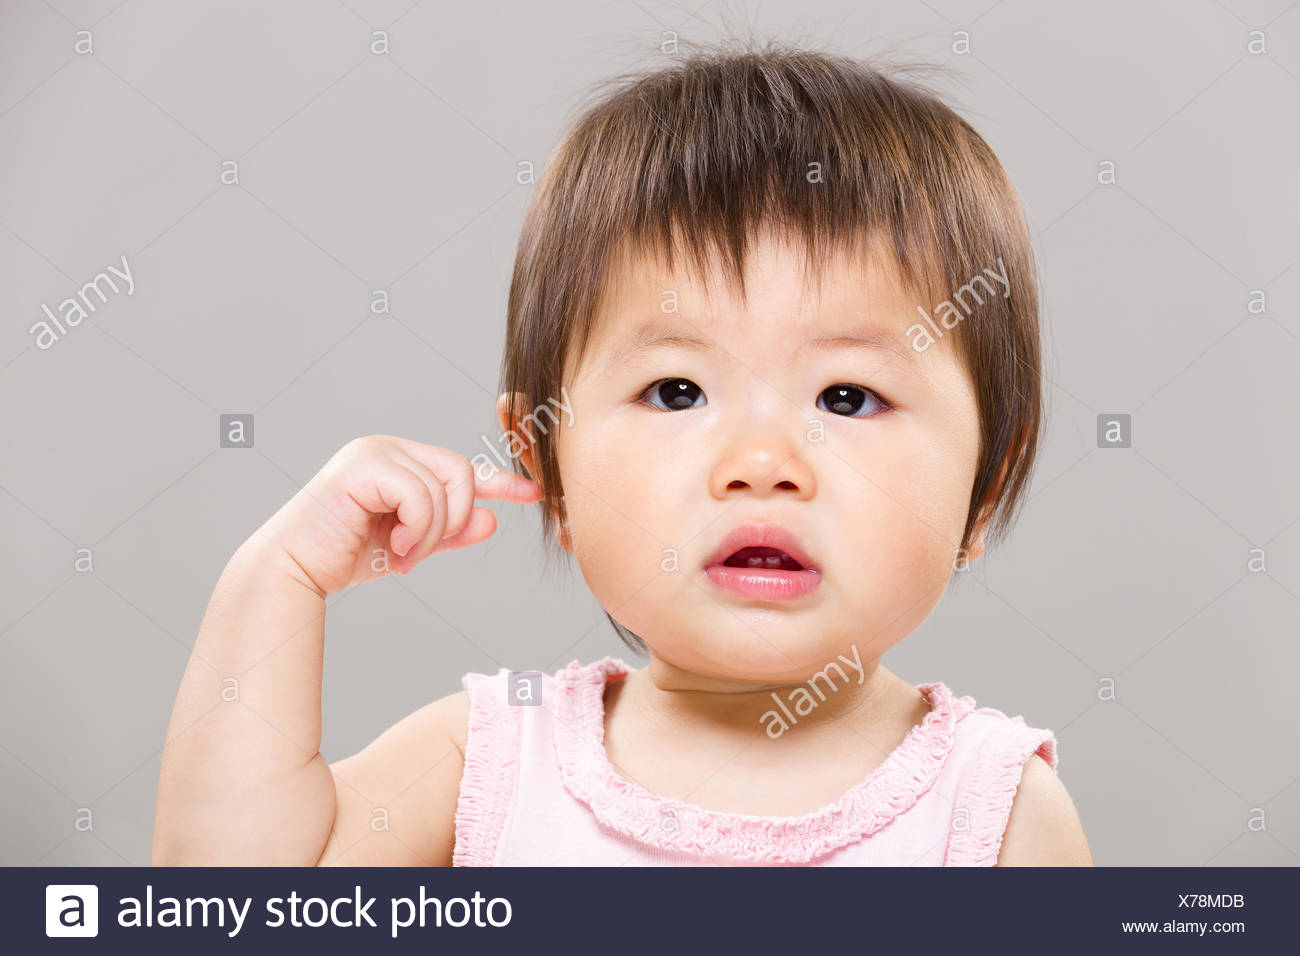 Baby girl touch her ear - Stock Image